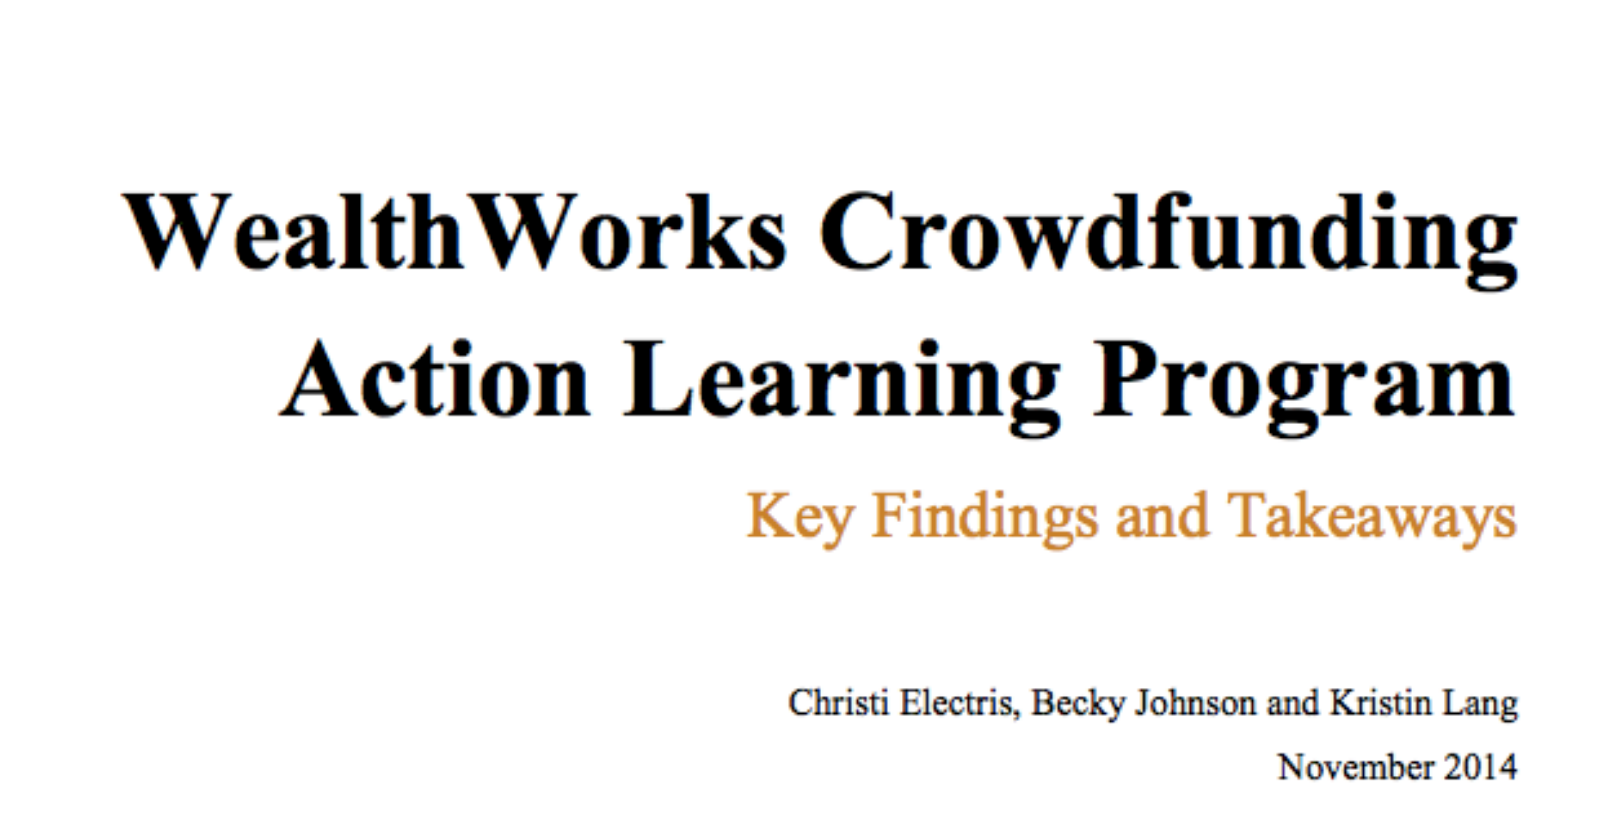 WealthWorks Crowdfunding Action Learning Program